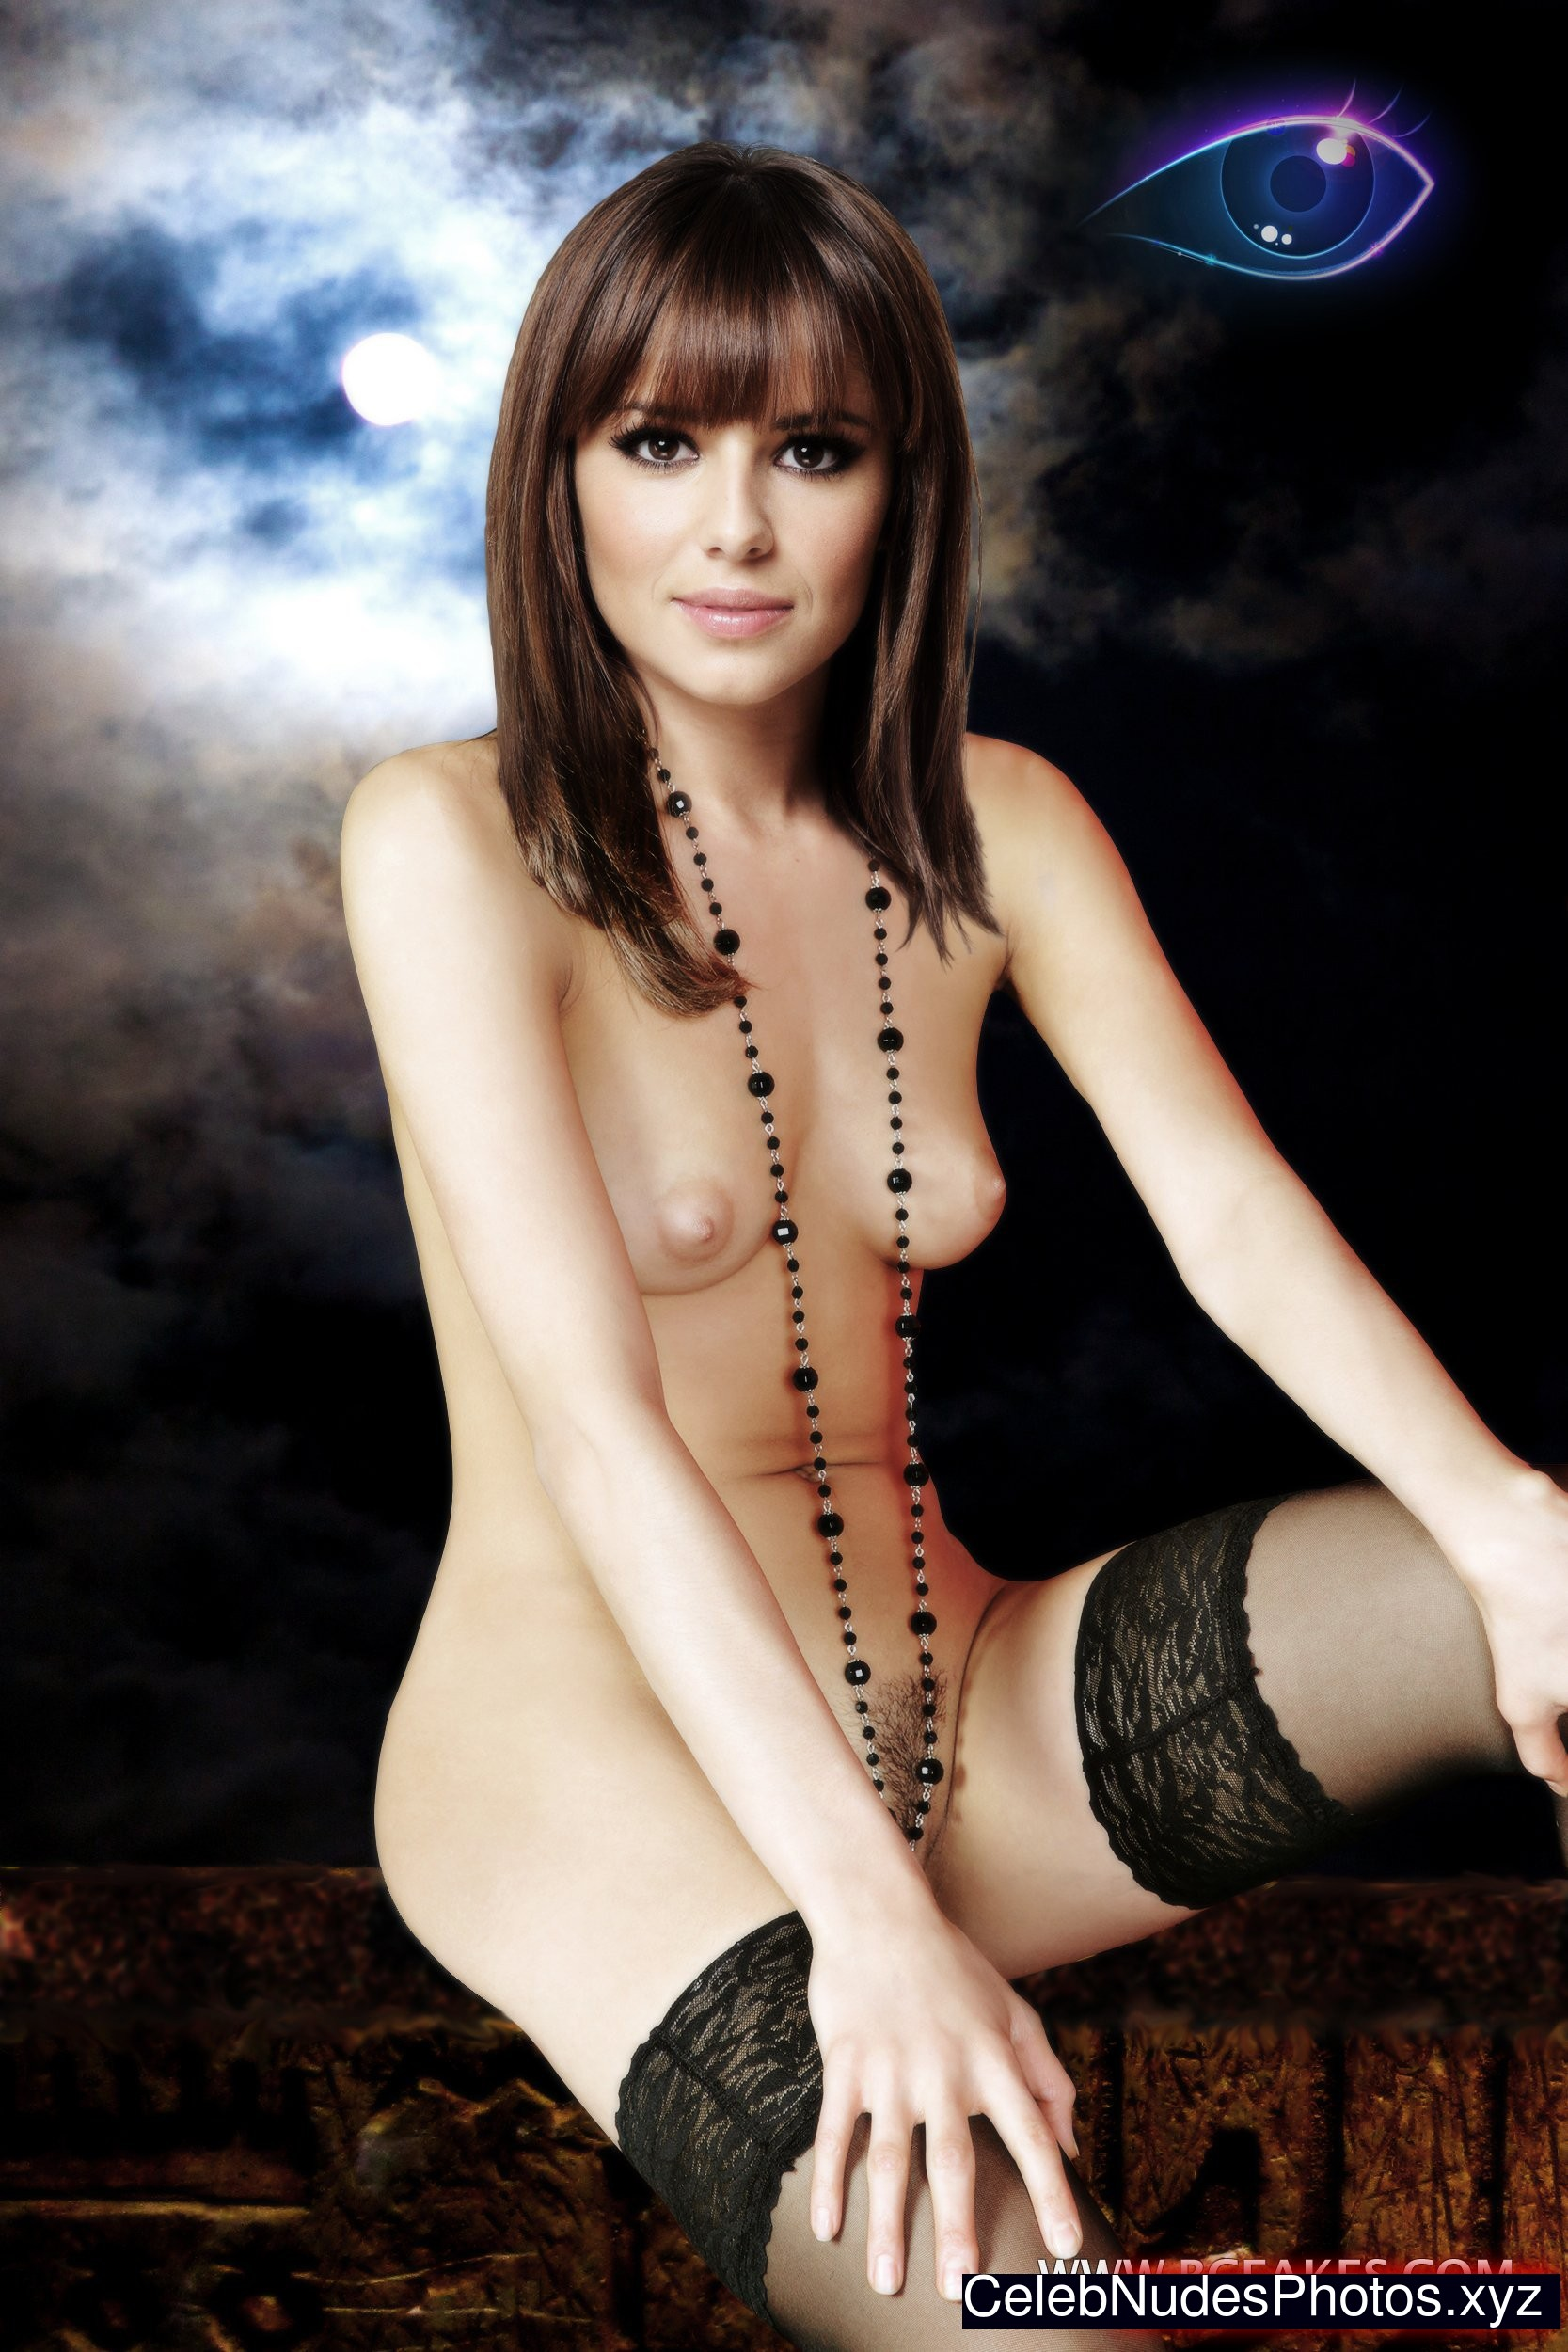 Cheryl Cole celebrities nude